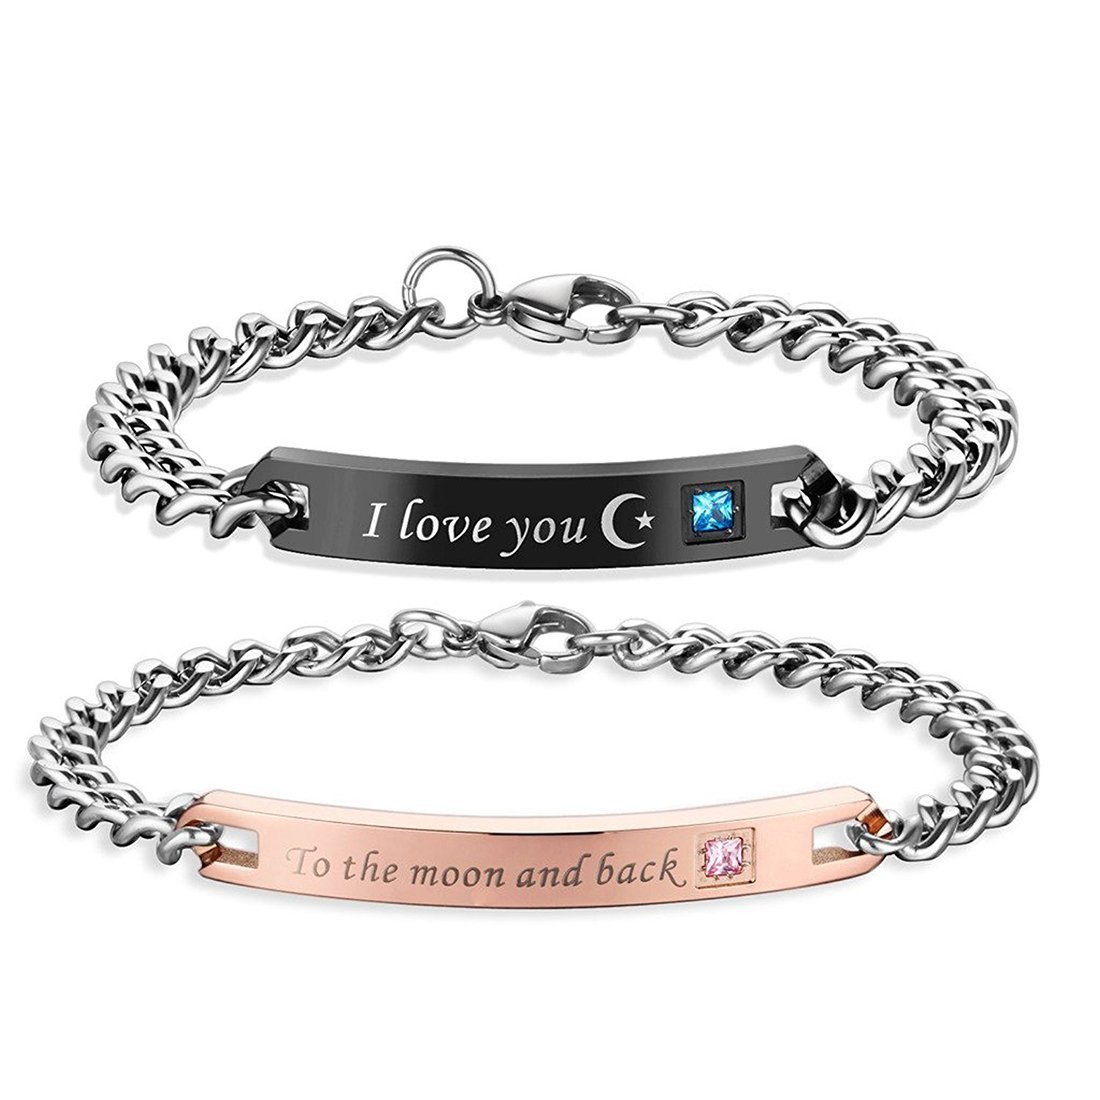 ''I love you To the moon and back''Couple Bracelets for Him and She Stainless Steel Bangle for Couples